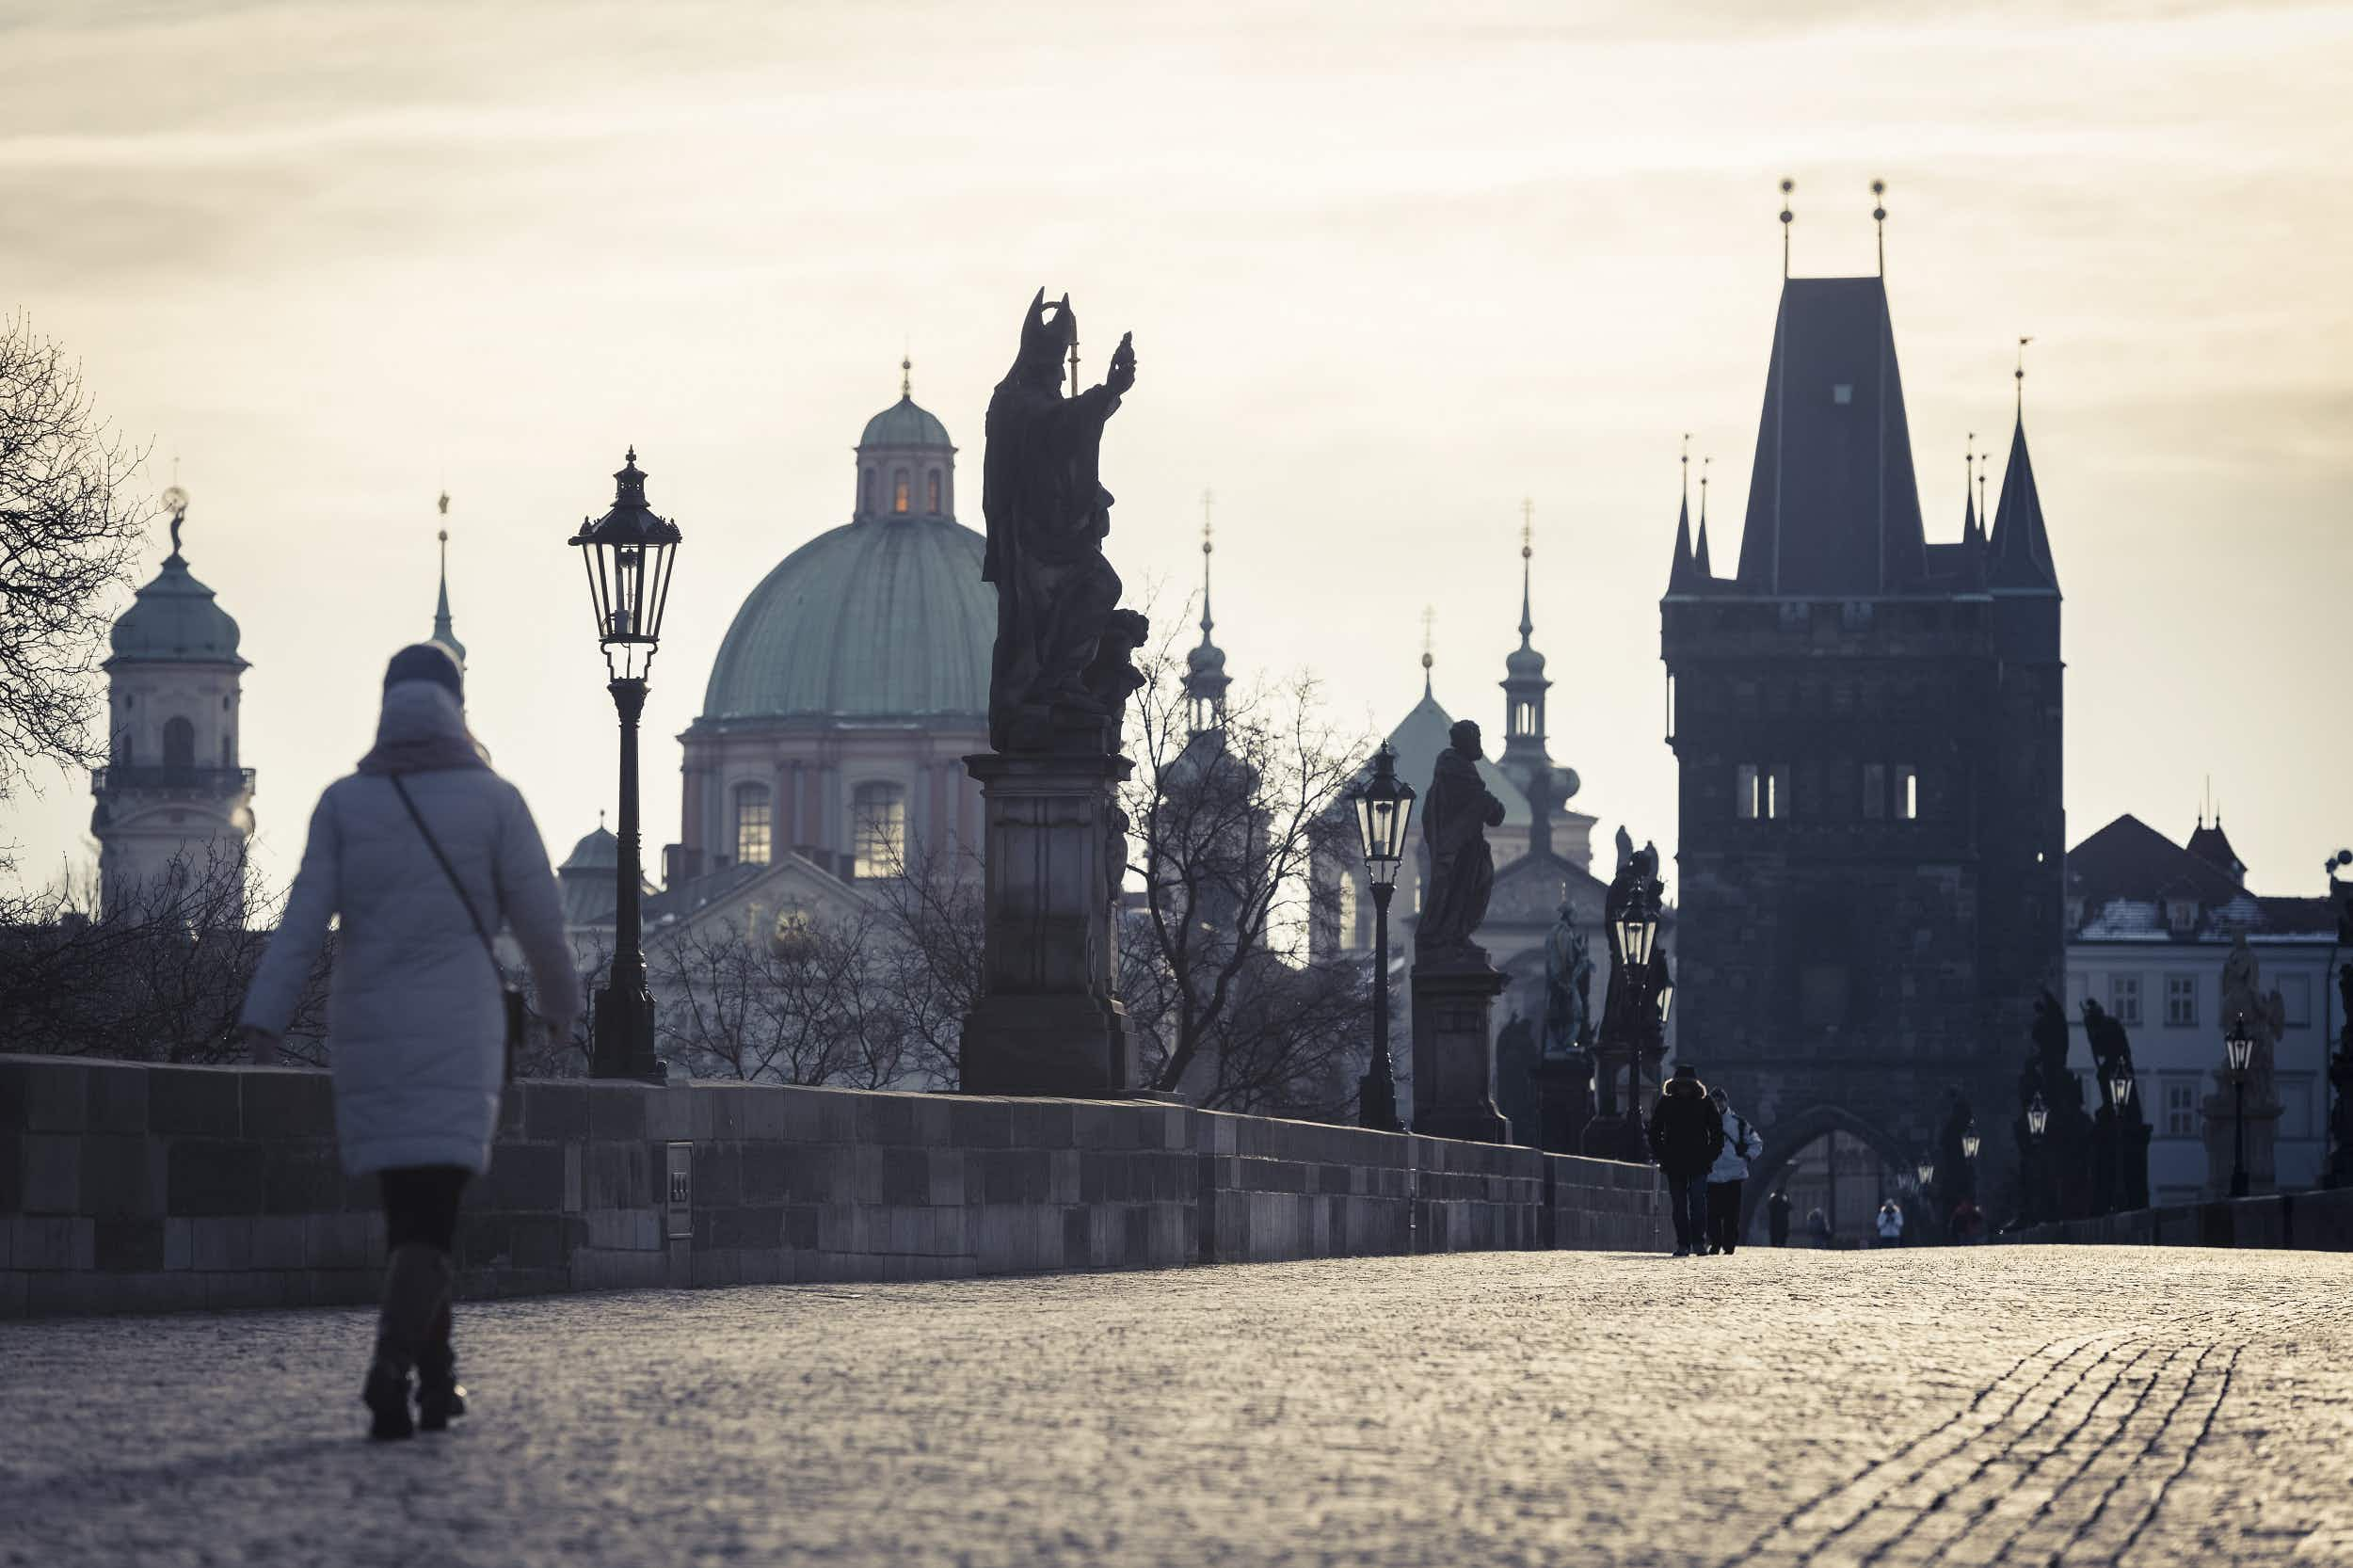 Charles Bridge lined with baroque statues, all enjoyed for free © Jonathan Stokes / Lonely Planet